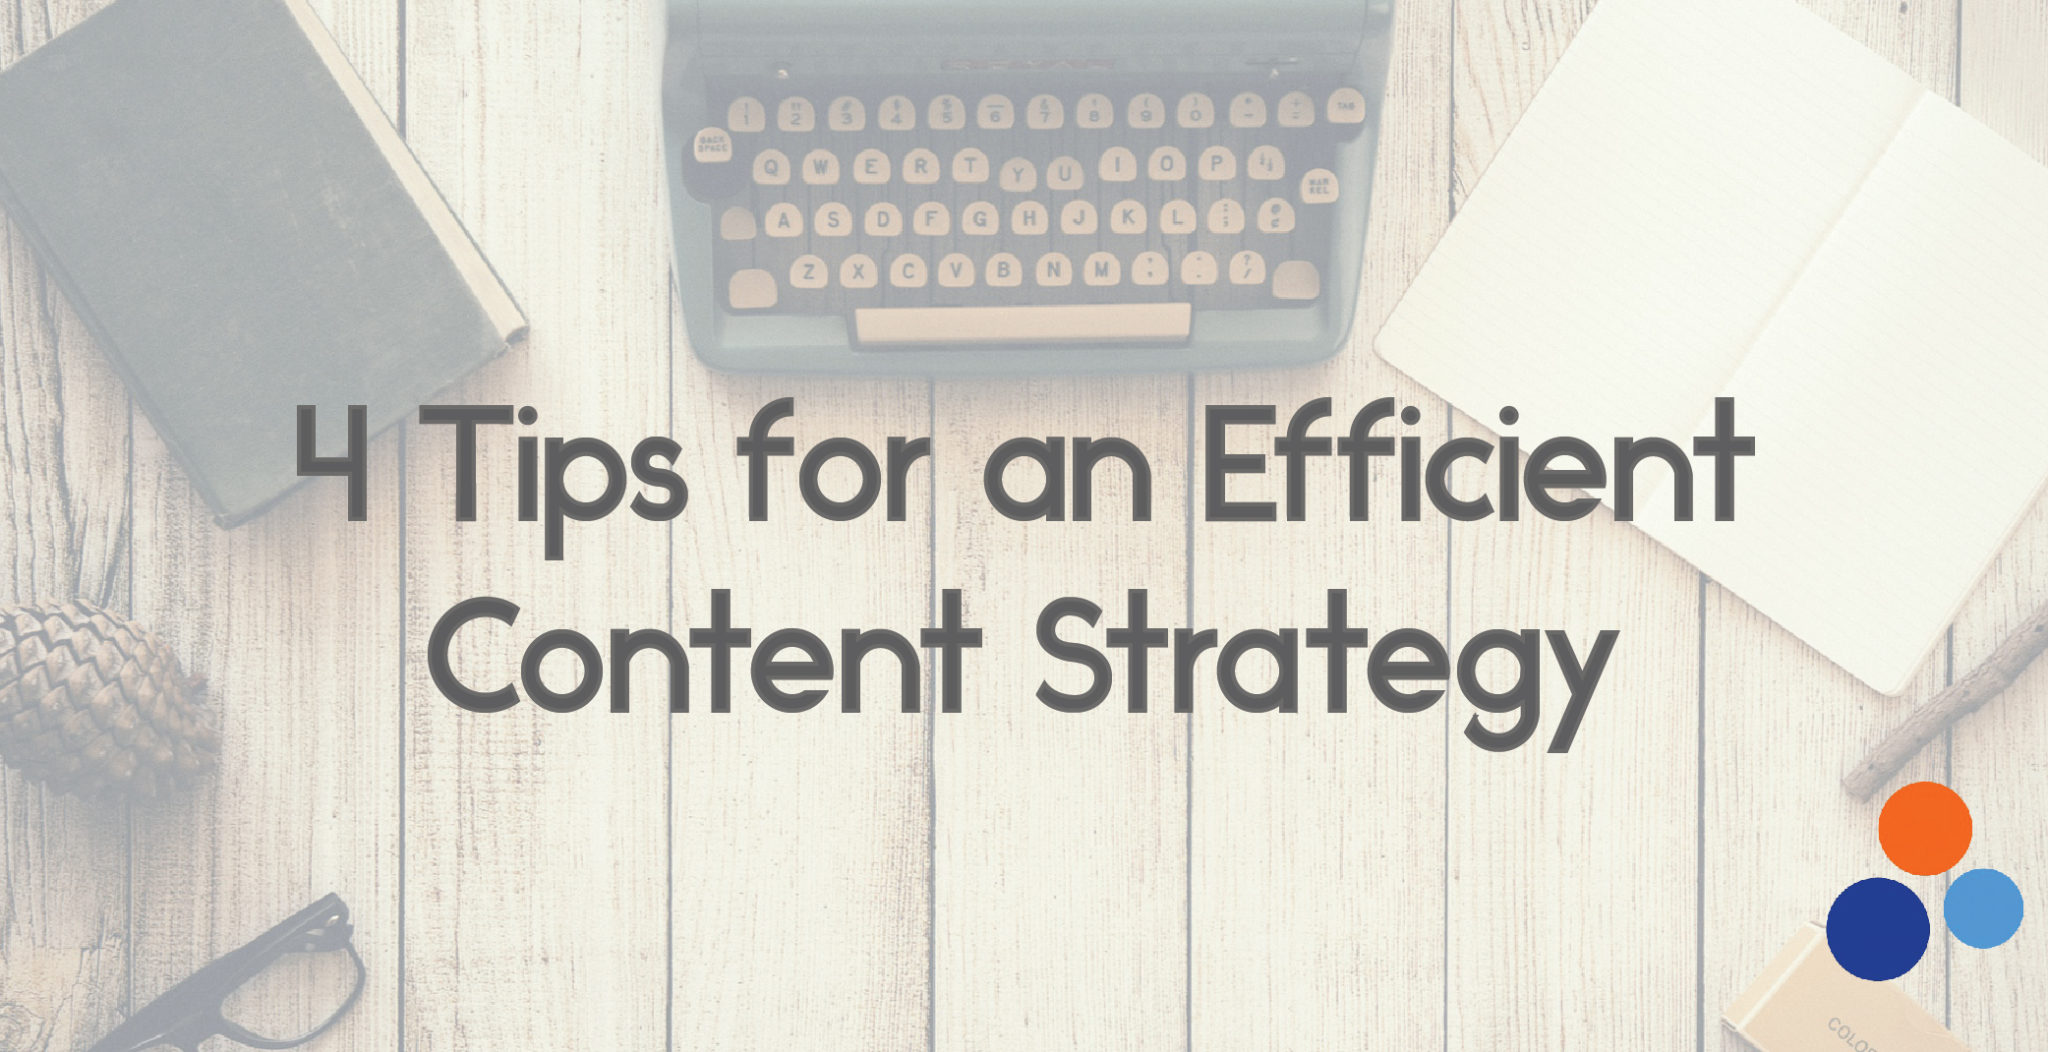 4 Tips for an Efficient Content Strategy